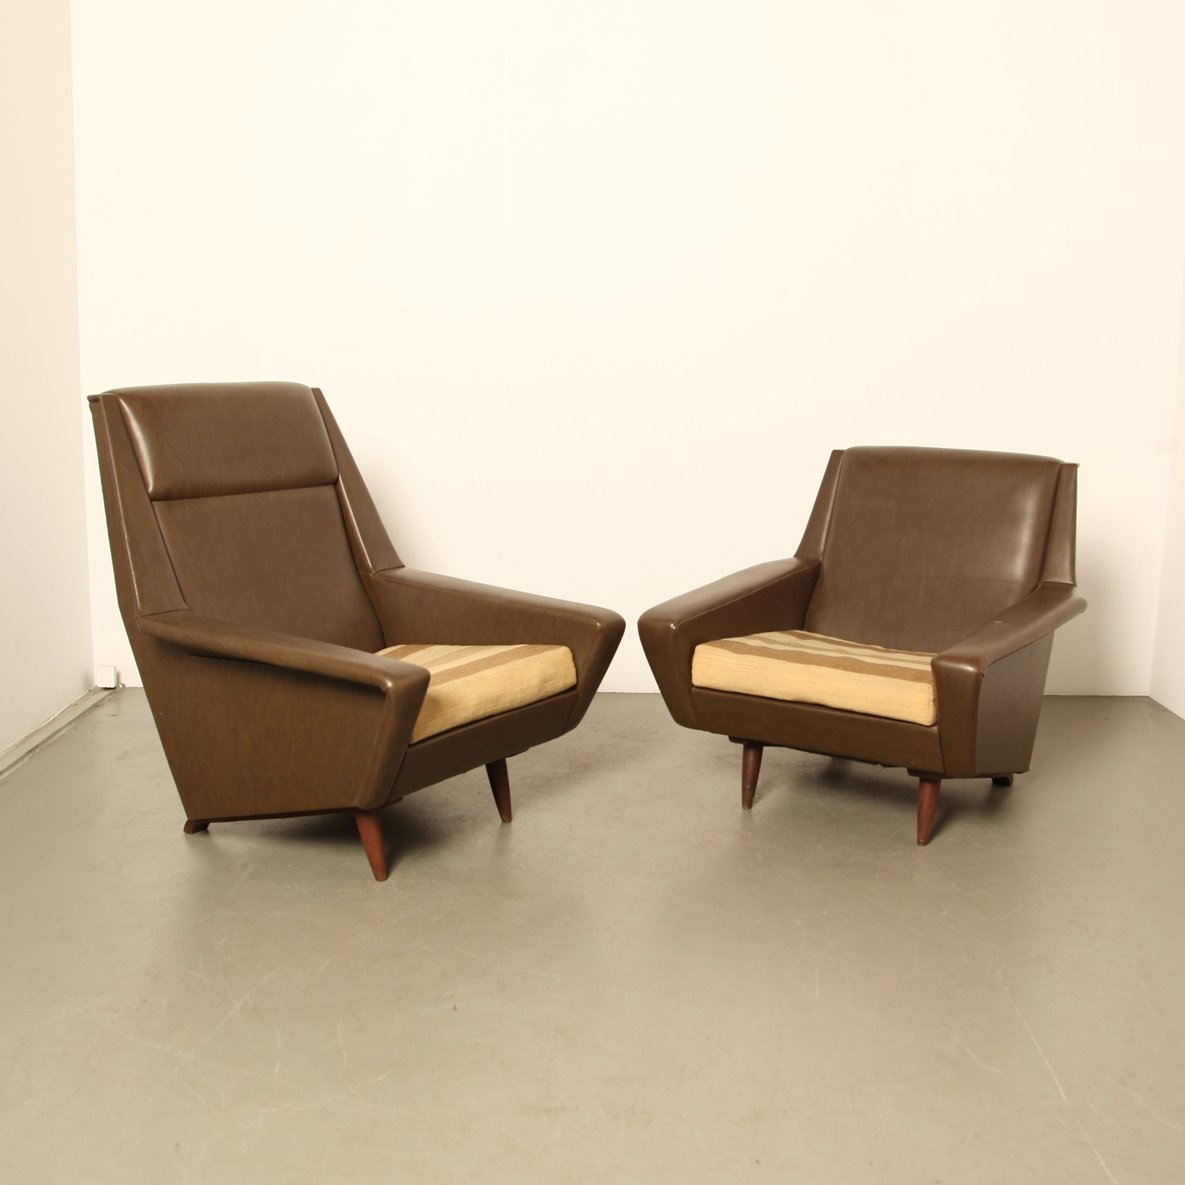 Pair Of Vintage Scandinavian Modern Lounge Chairs By Folke Ohlsson